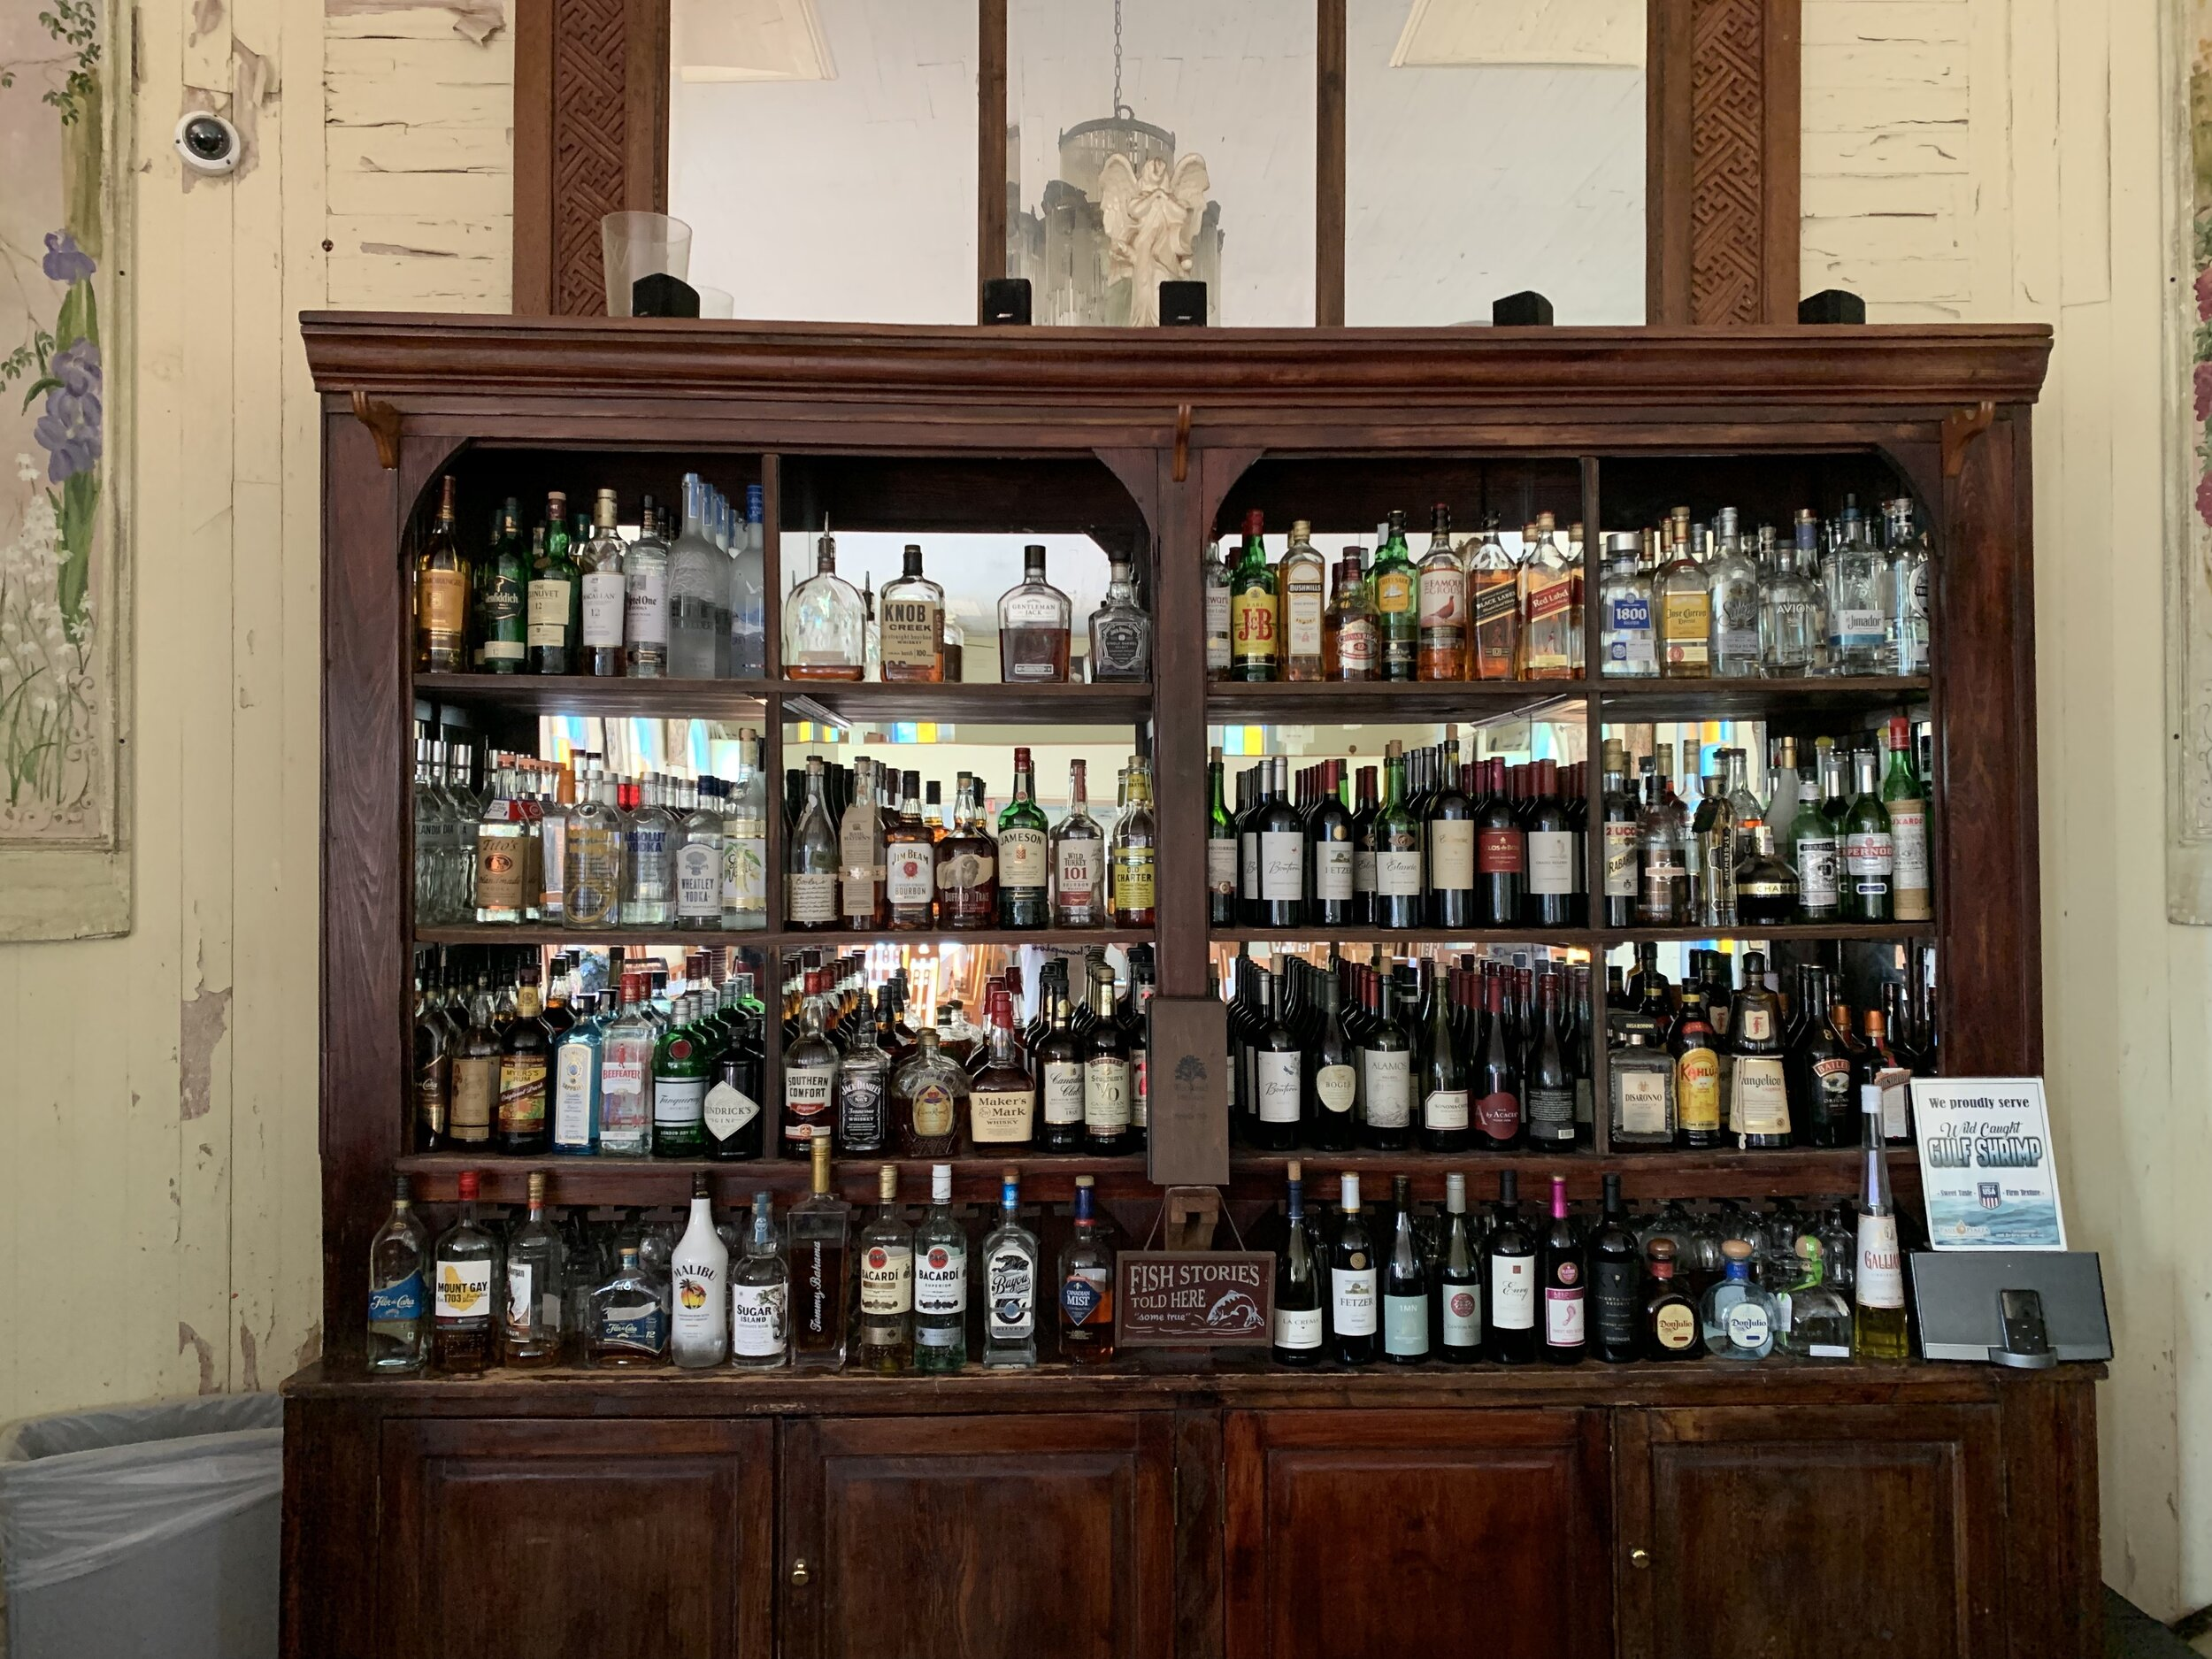 The best birthday present a brother could ask for - a fully stocked bar!